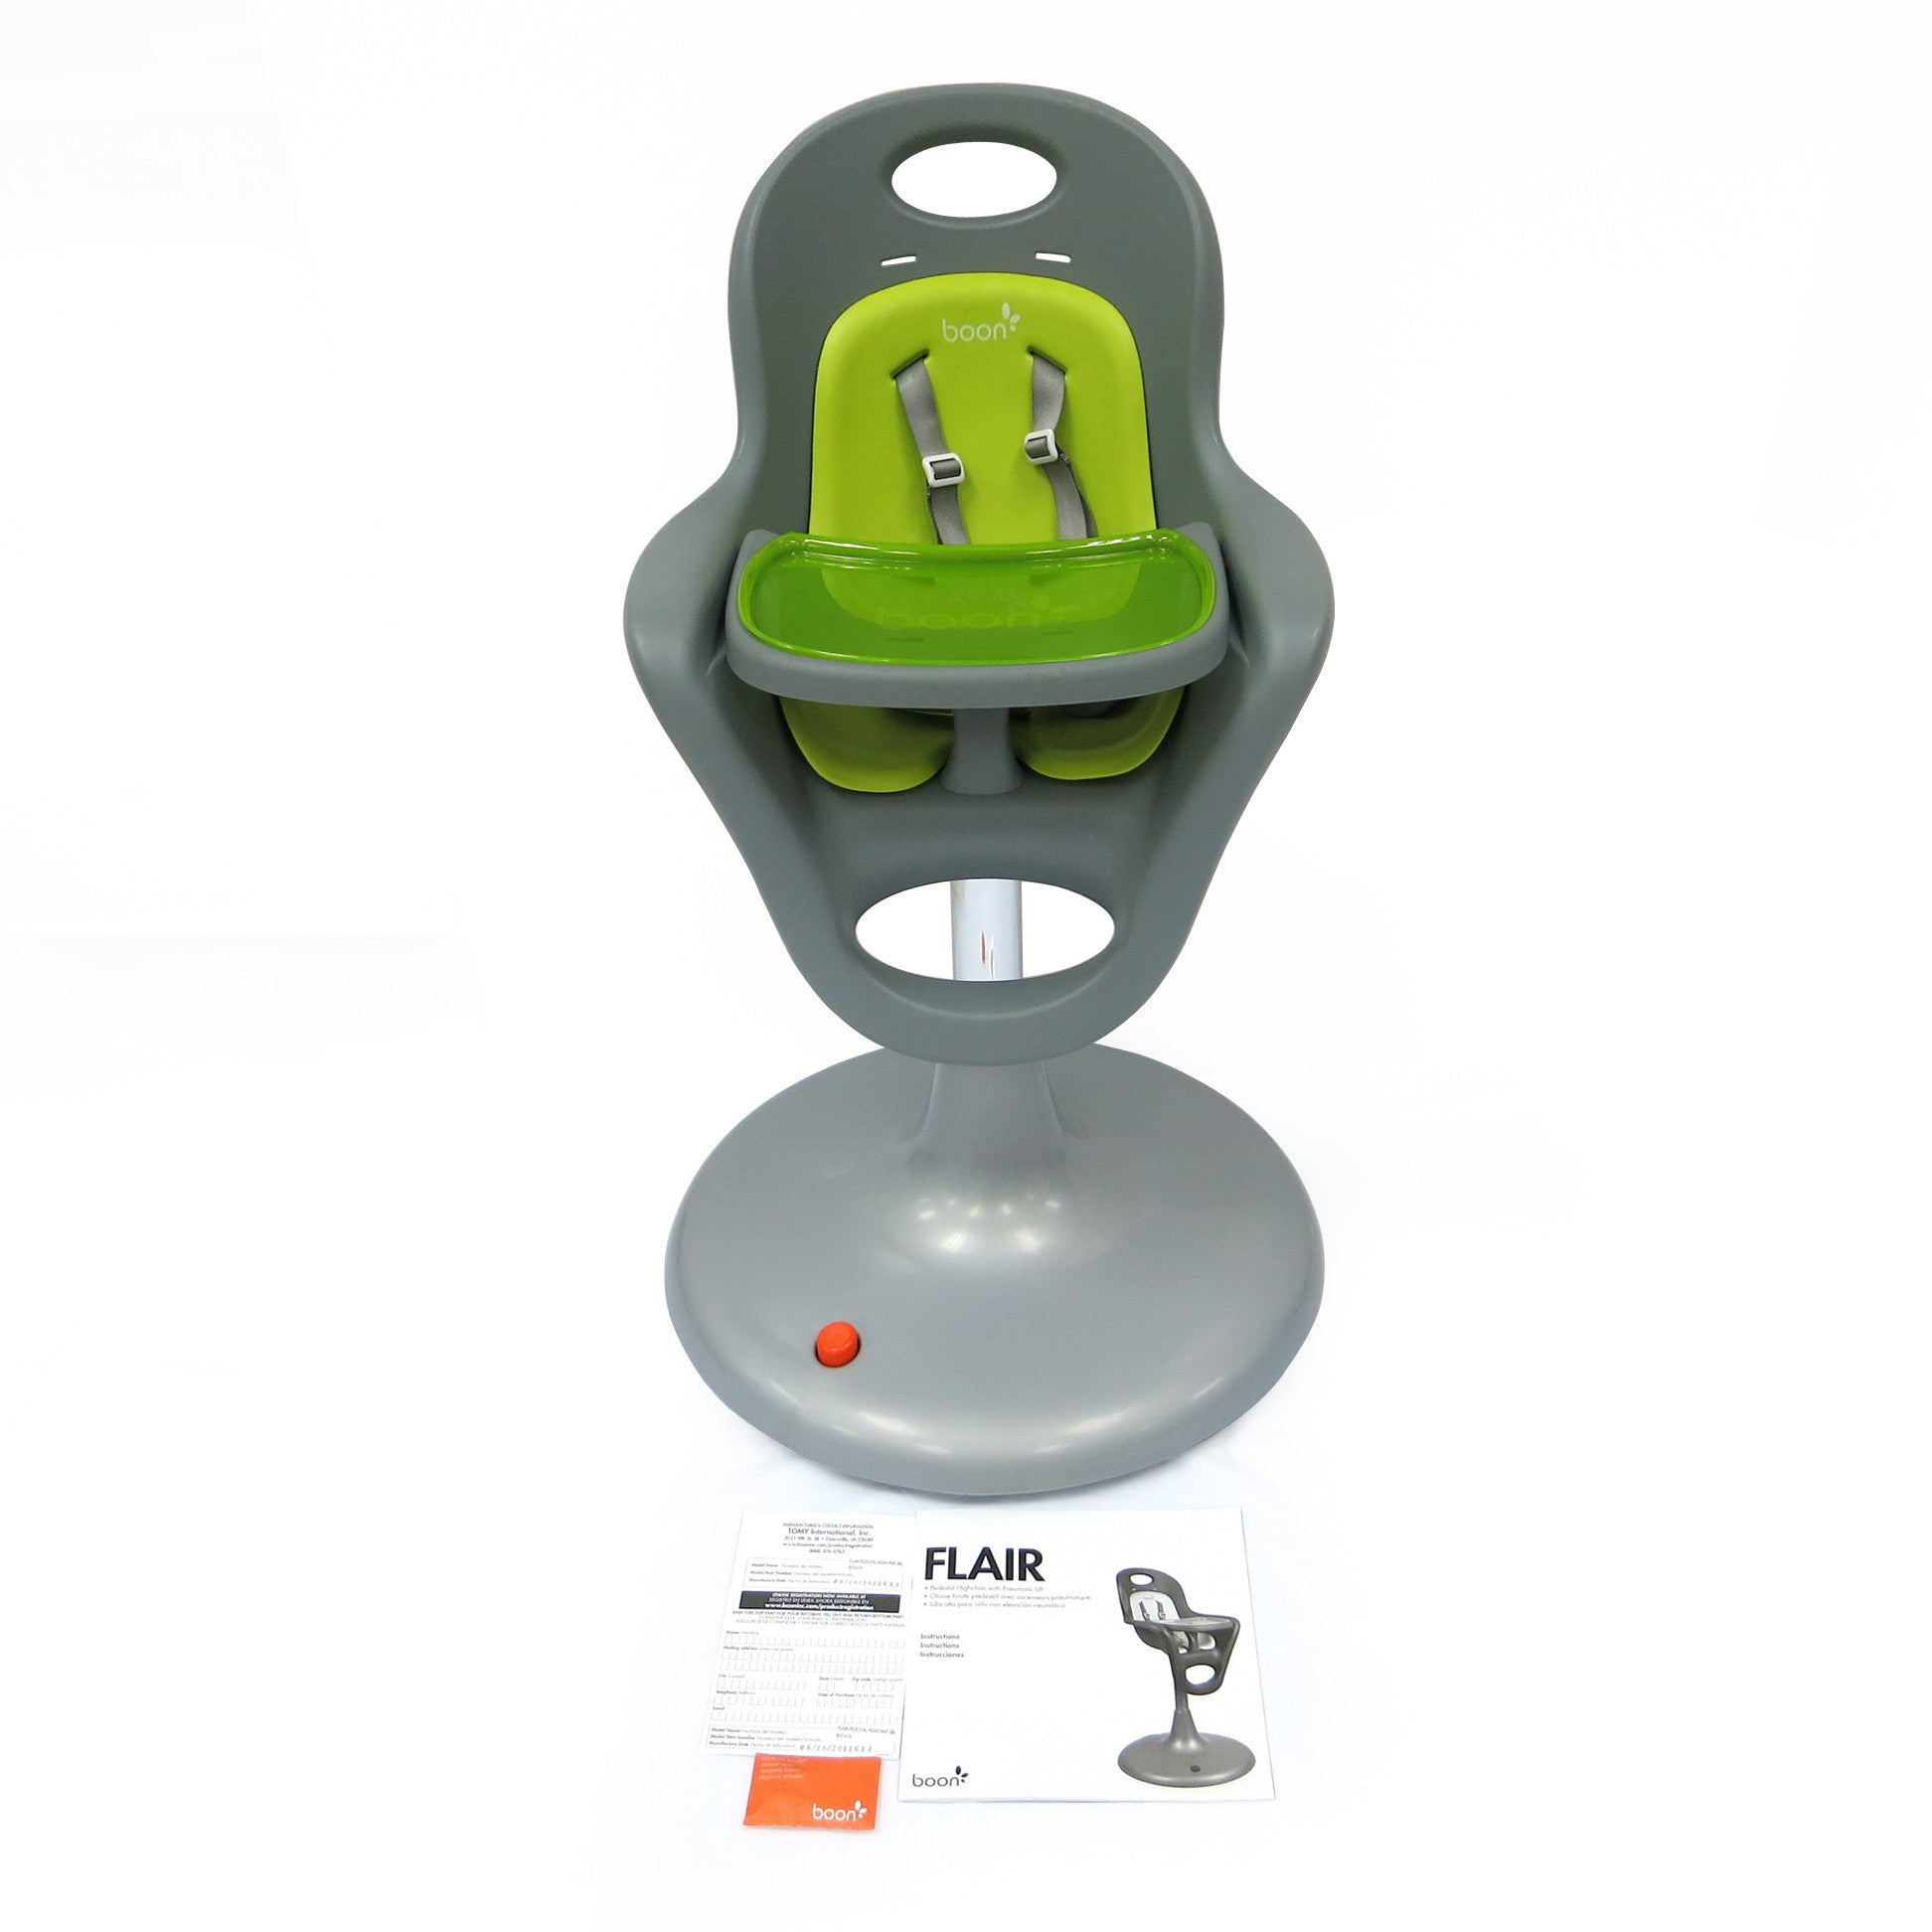 ... Boon Flair Infant Highchair With Foot Pedal Lift - PeppyParents.com - 2  sc 1 st  PeppyParents & Boon Flair Infant Highchair w/ Lift - PeppyParents.com